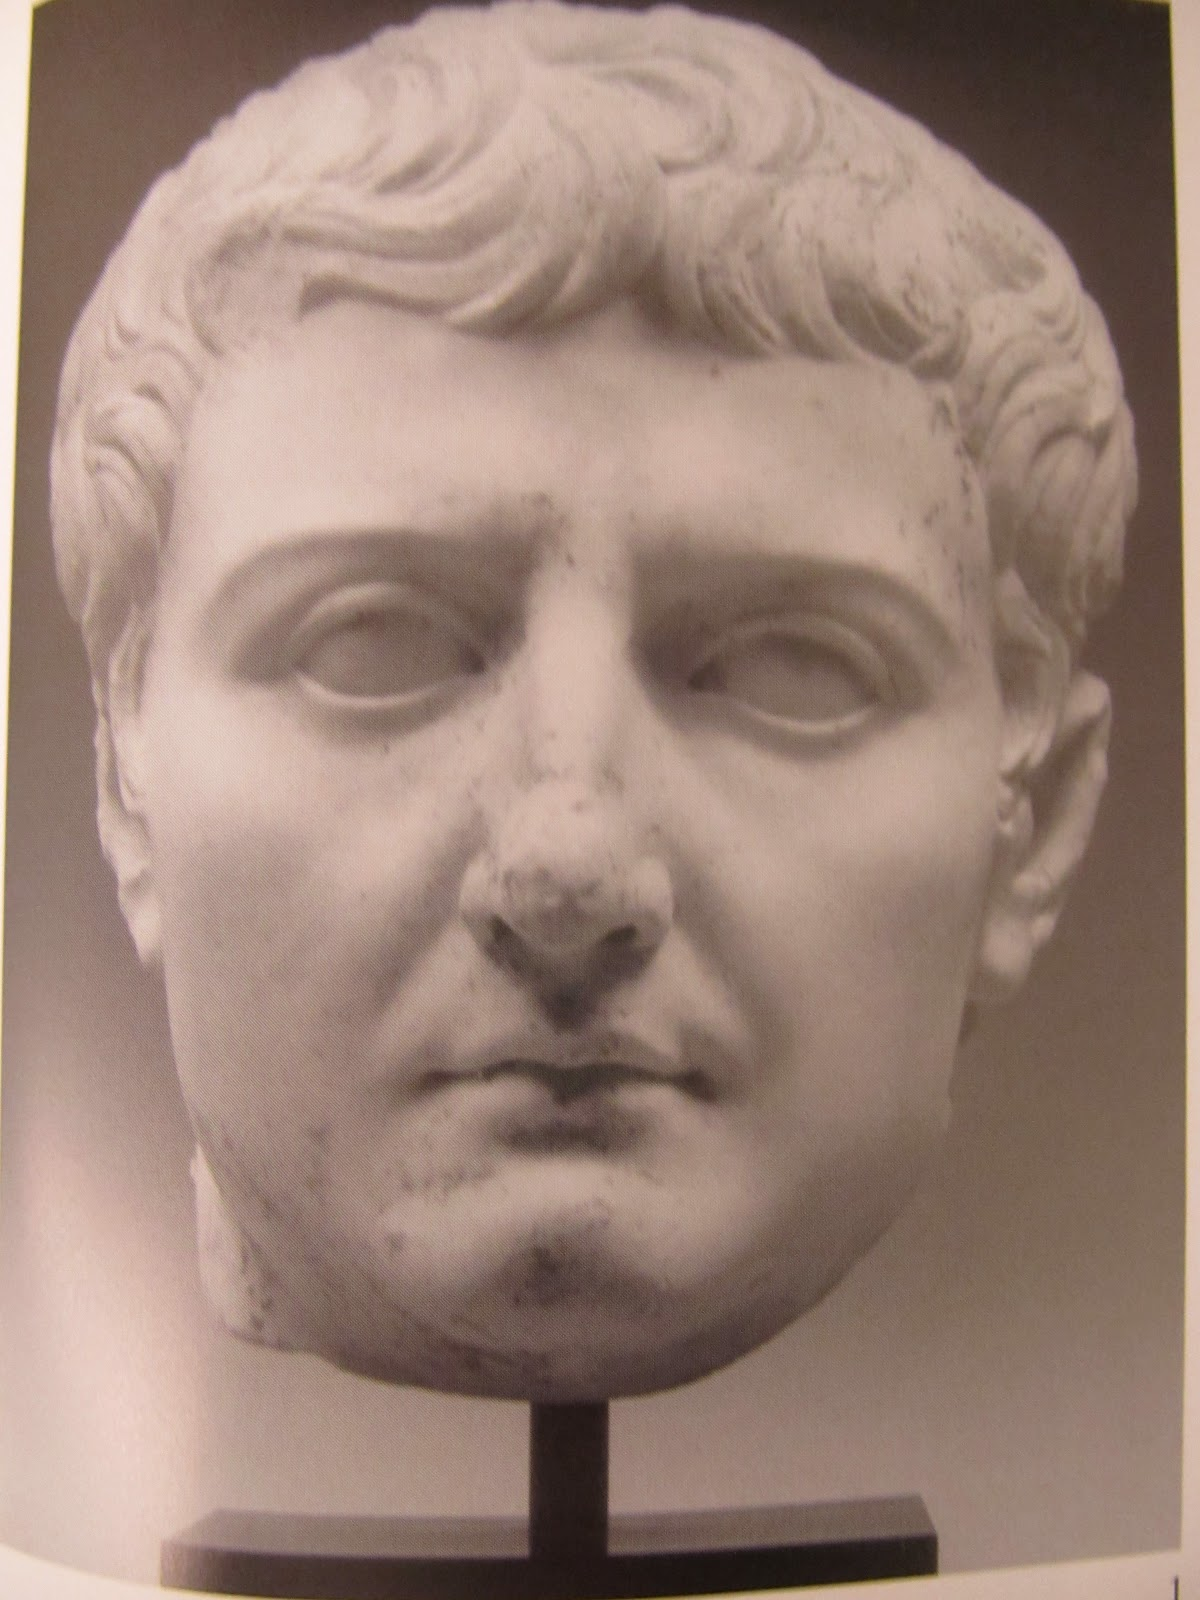 emperor tiberius essay Octavian augustus caesar, or as he is commonly named, augustus, was the first emperor of  was tiberius, the son of his wife  of this essay and no longer wish to.